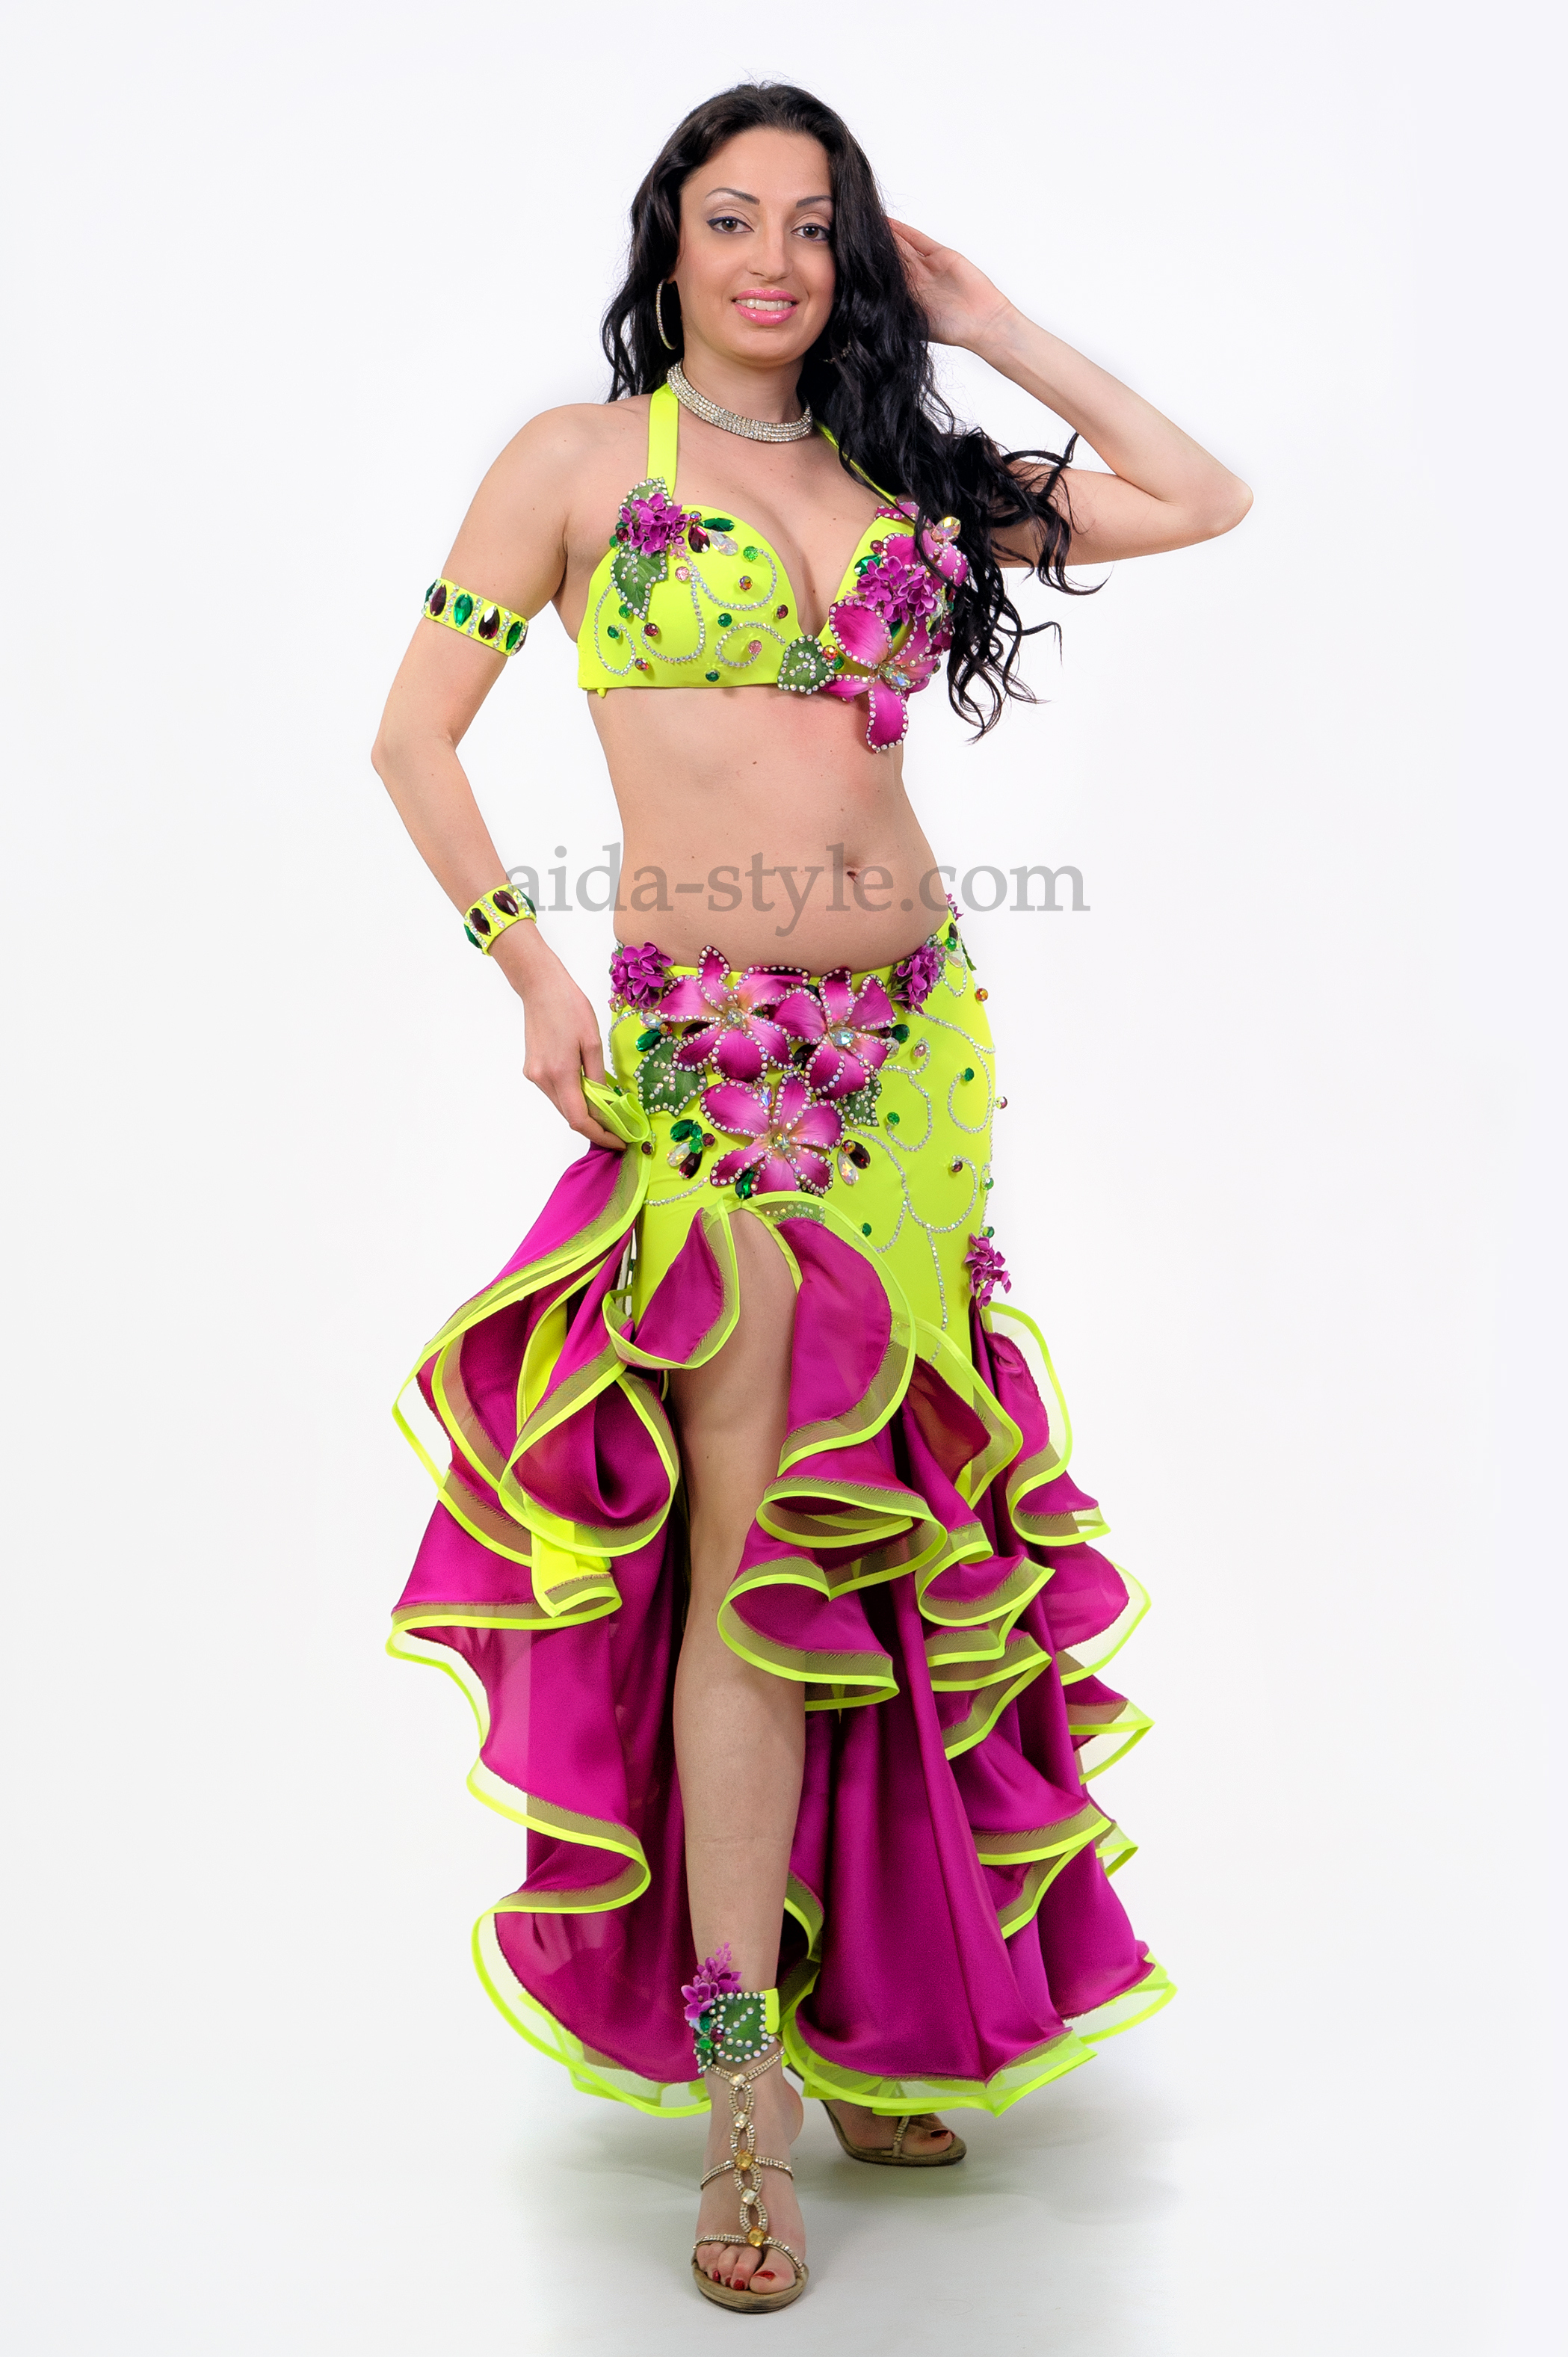 2a72bb99f45d Two-colored professional belly dance dress, of chartreuse and violet  colors. The skirt